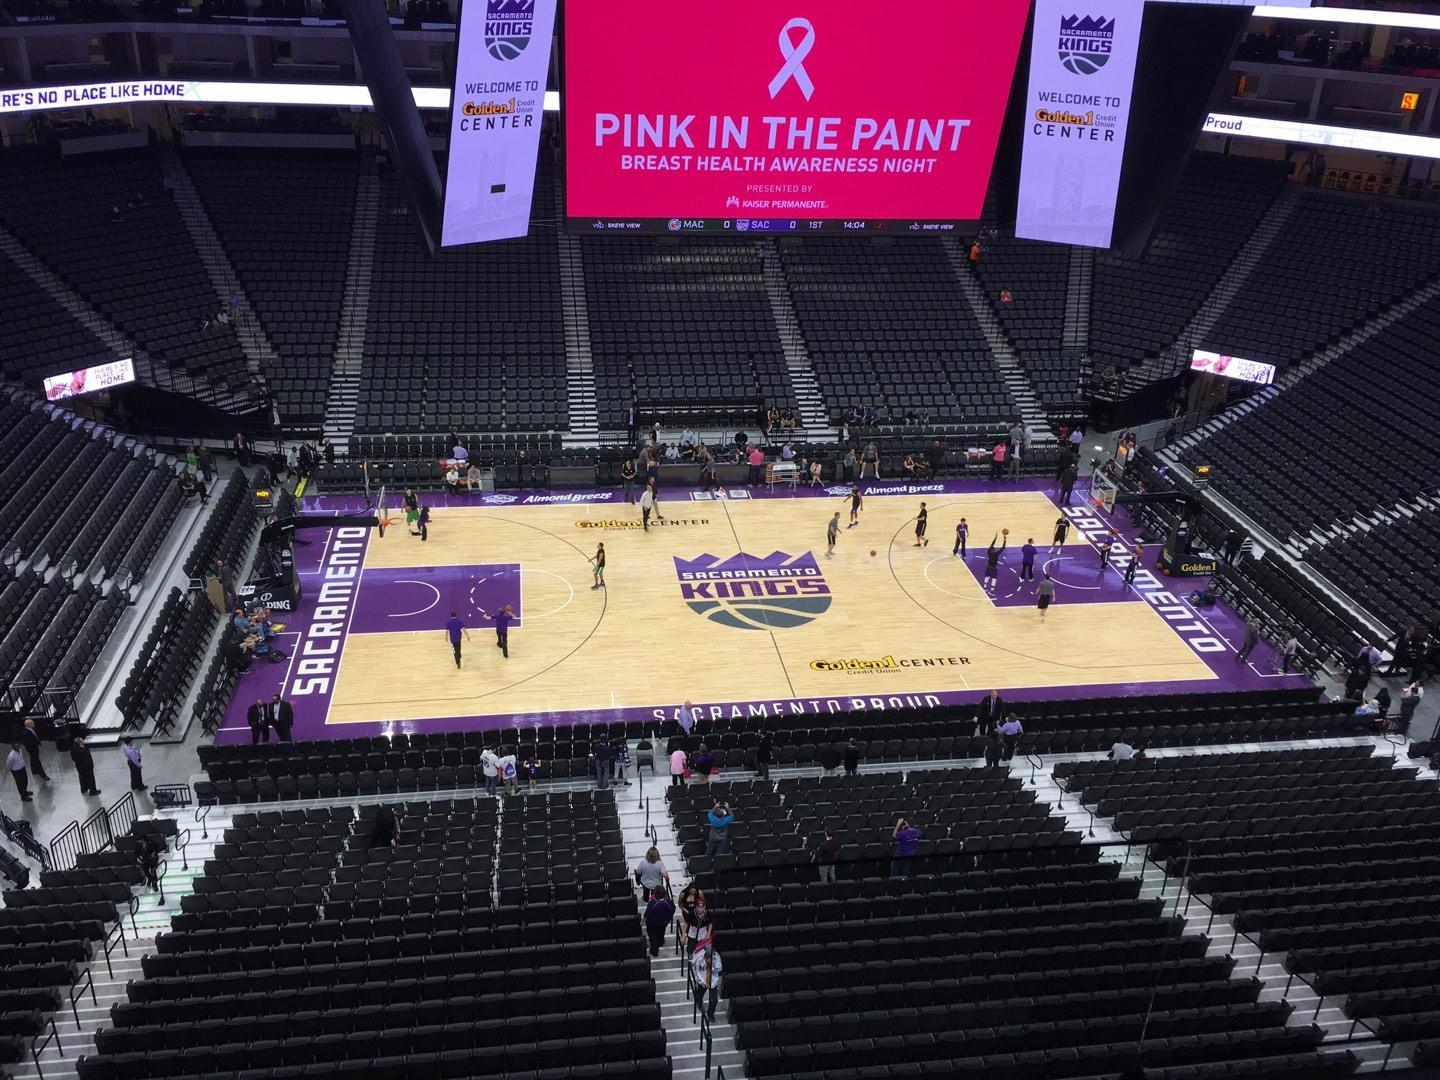 Golden 1 Center Secção 219 Fila B Lugar 2